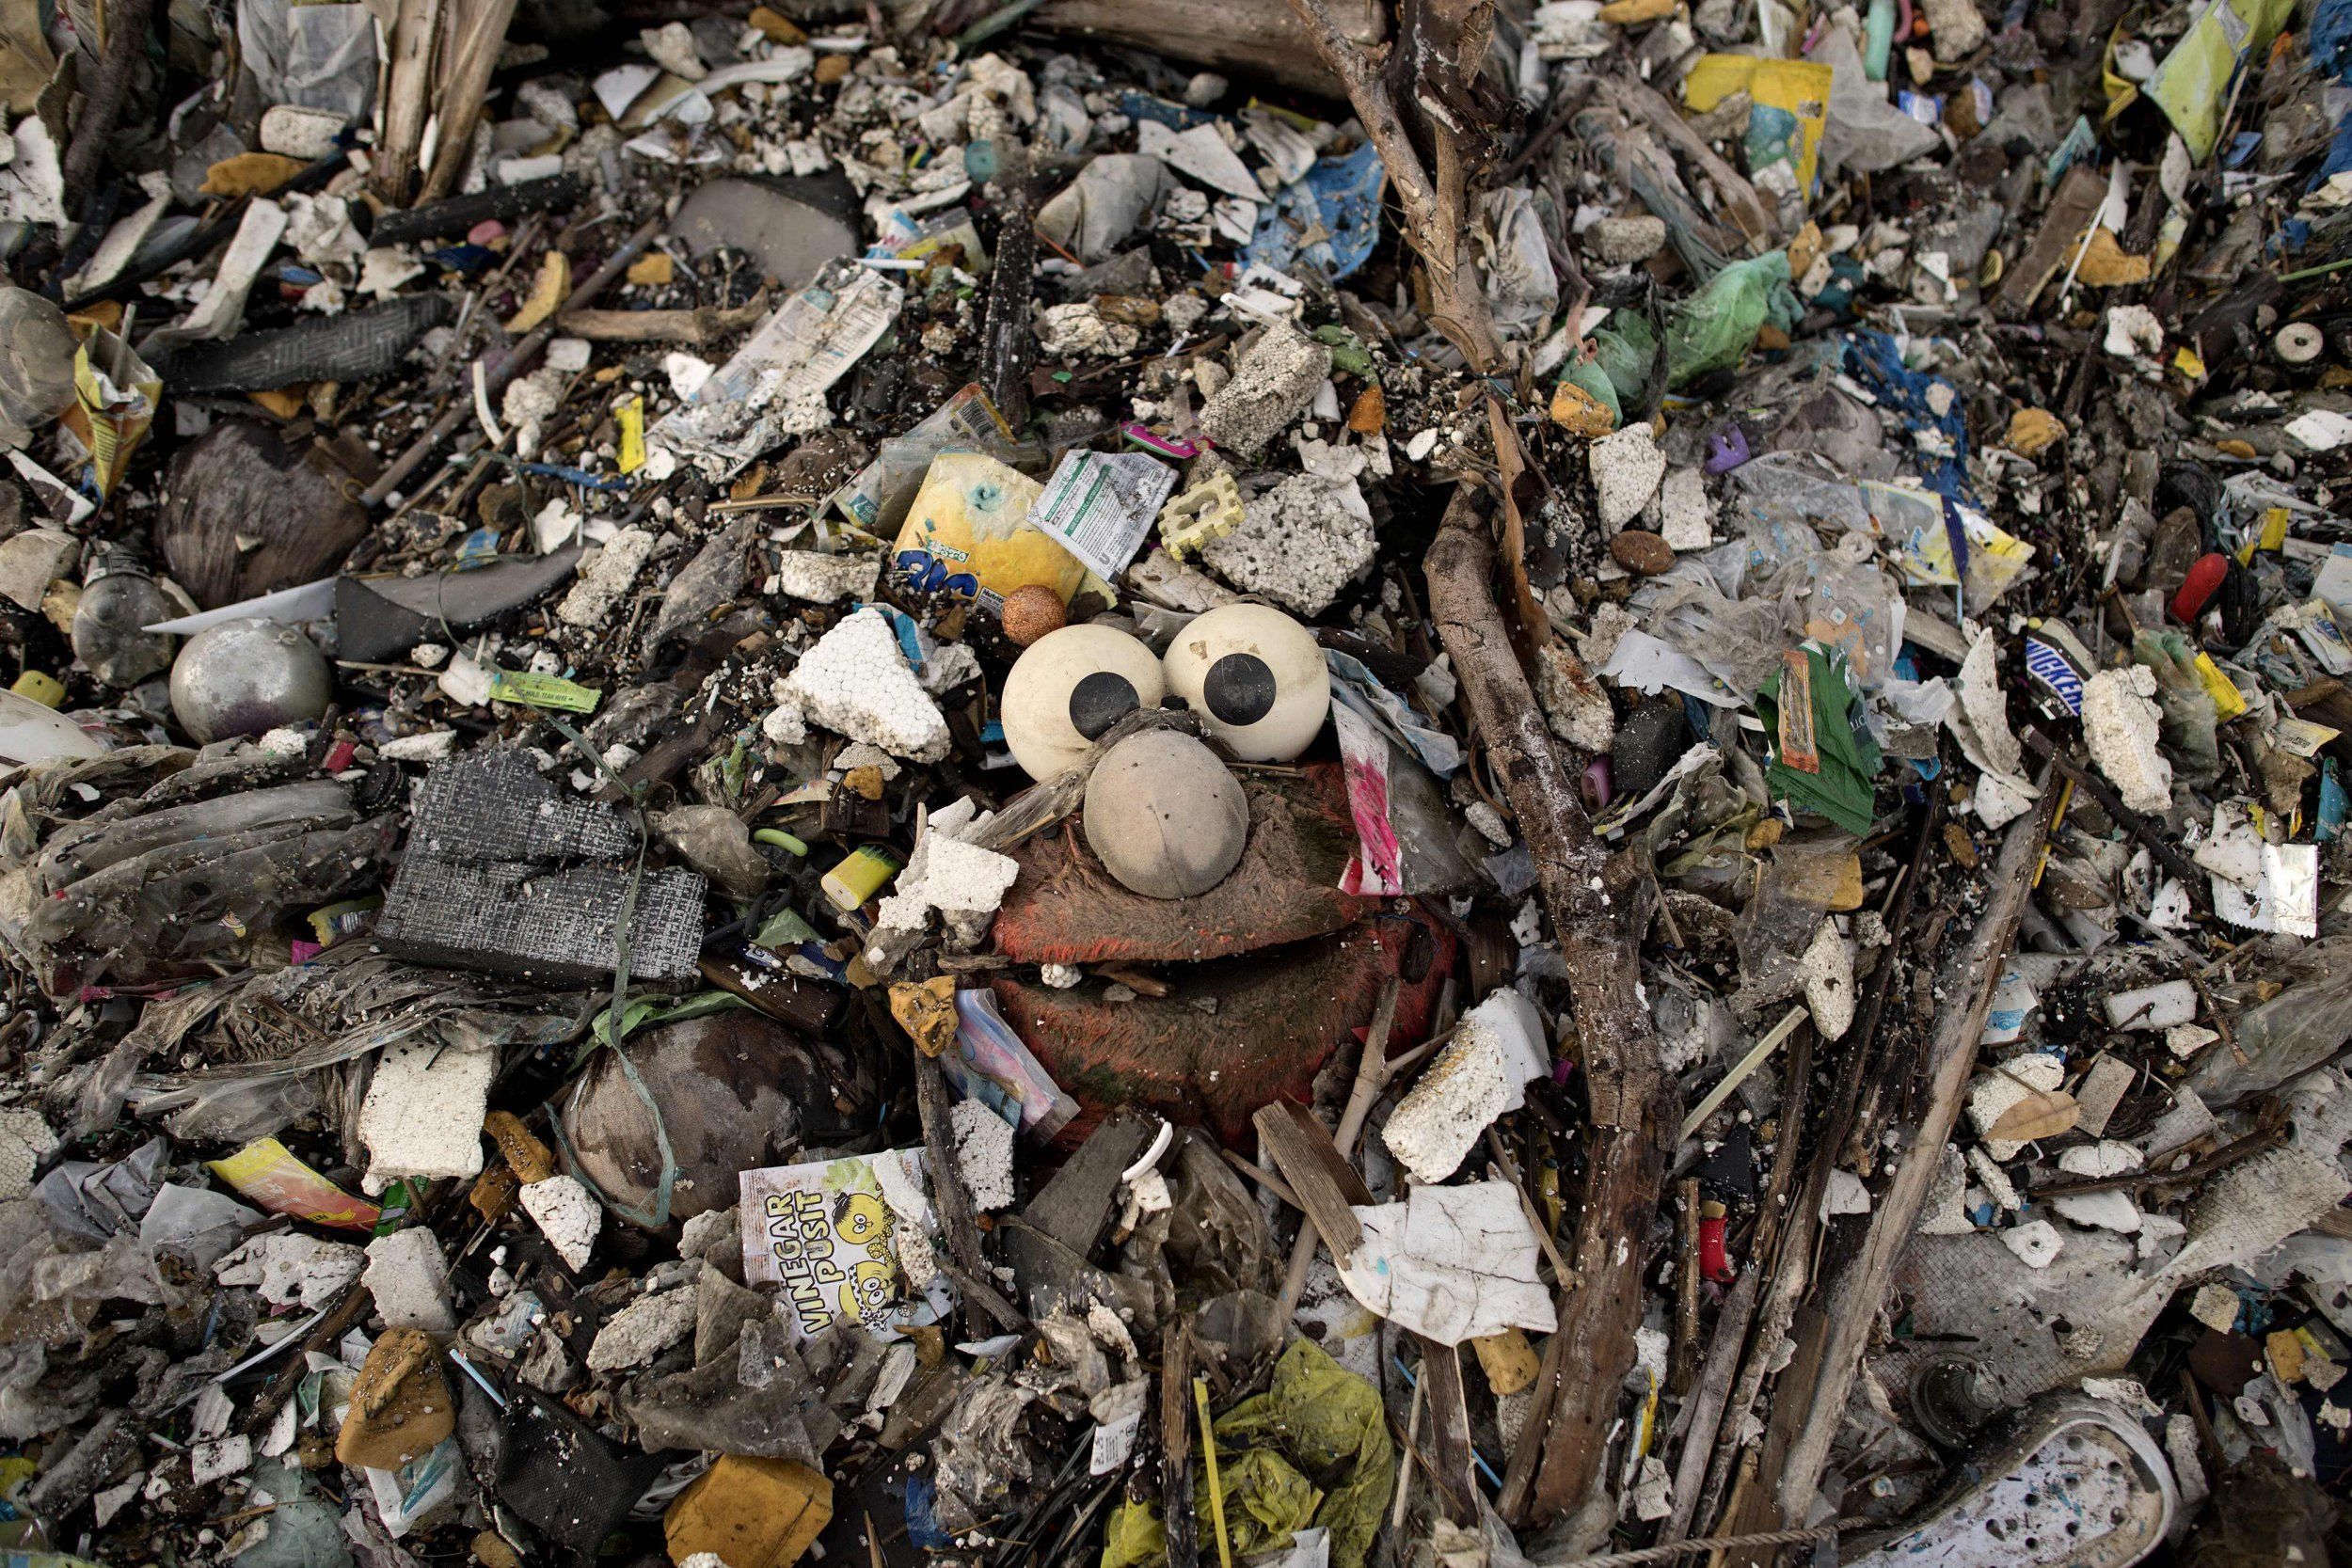 "This photo taken on May 19, 2018 shows a stuffed toy of the Sesame Street character ""Elmo"" surrounded by plastic waste on a beach on the Freedom island critical habitat and ecotourism area near Manila. About eight million tonnes of plastic waste are dumped into the world's oceans every year - the equivalent of one garbage truck of plastic being tipped into the sea every minute... of every day. Over half comes from five Asian countries: China, Indonesia, the Philippines, Thailand and Vietnam, according to a 2015 study in Science journal. / AFP PHOTO / Noel CELISNOEL CELIS/AFP/Getty Images"